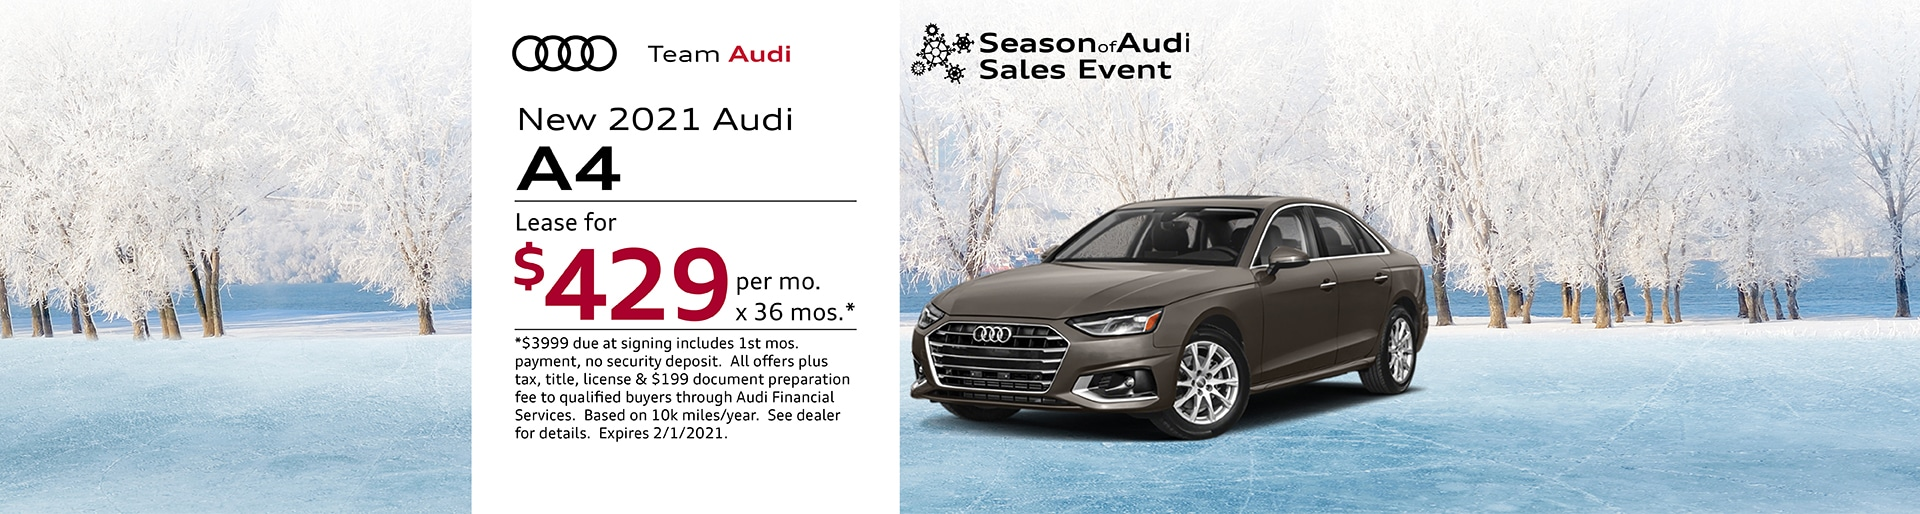 2021 Audi A4 Special Offer | Merrillville, IN